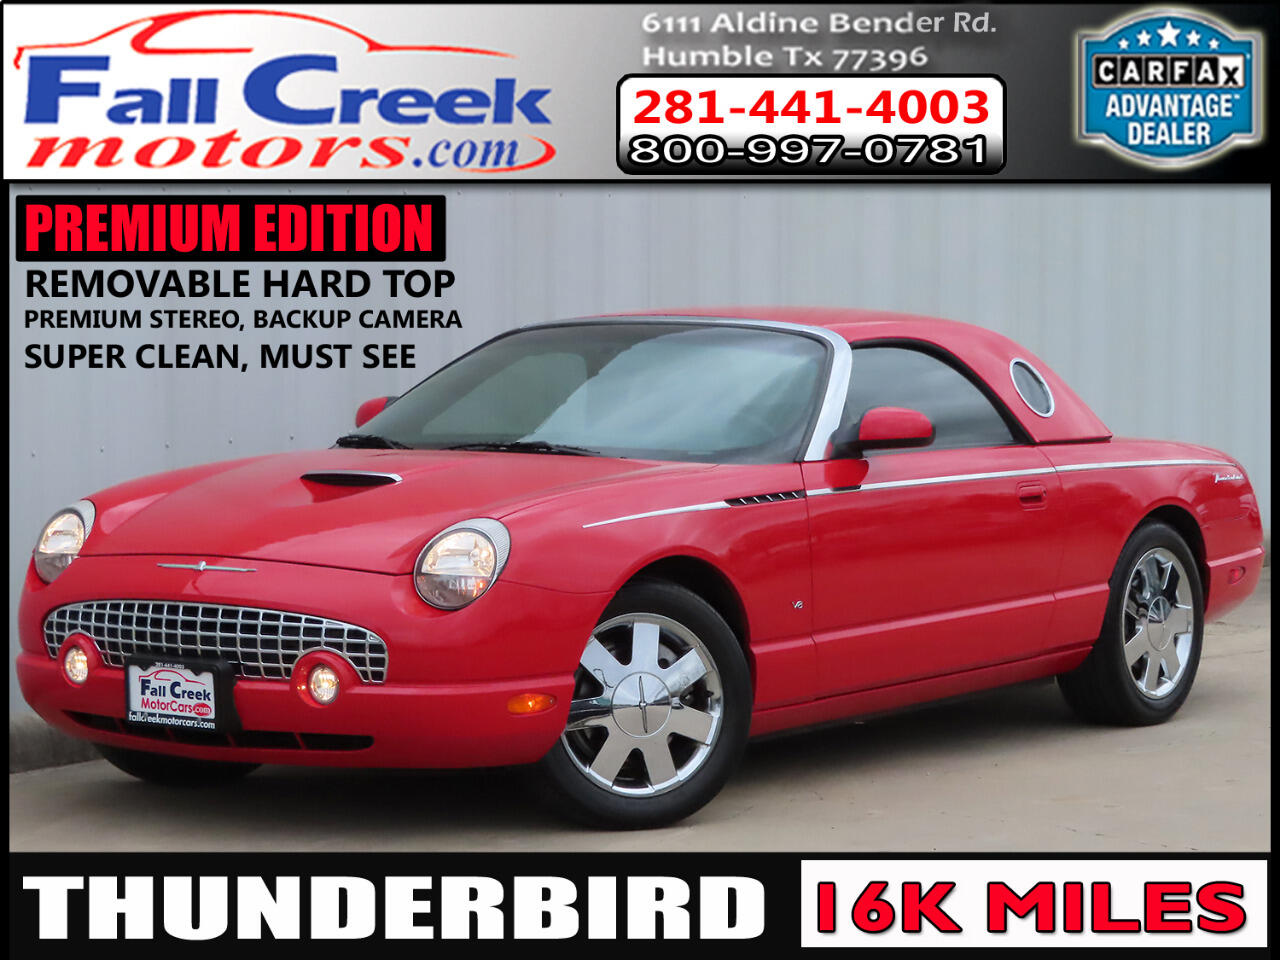 Ford Thunderbird Premium with removable top 2003